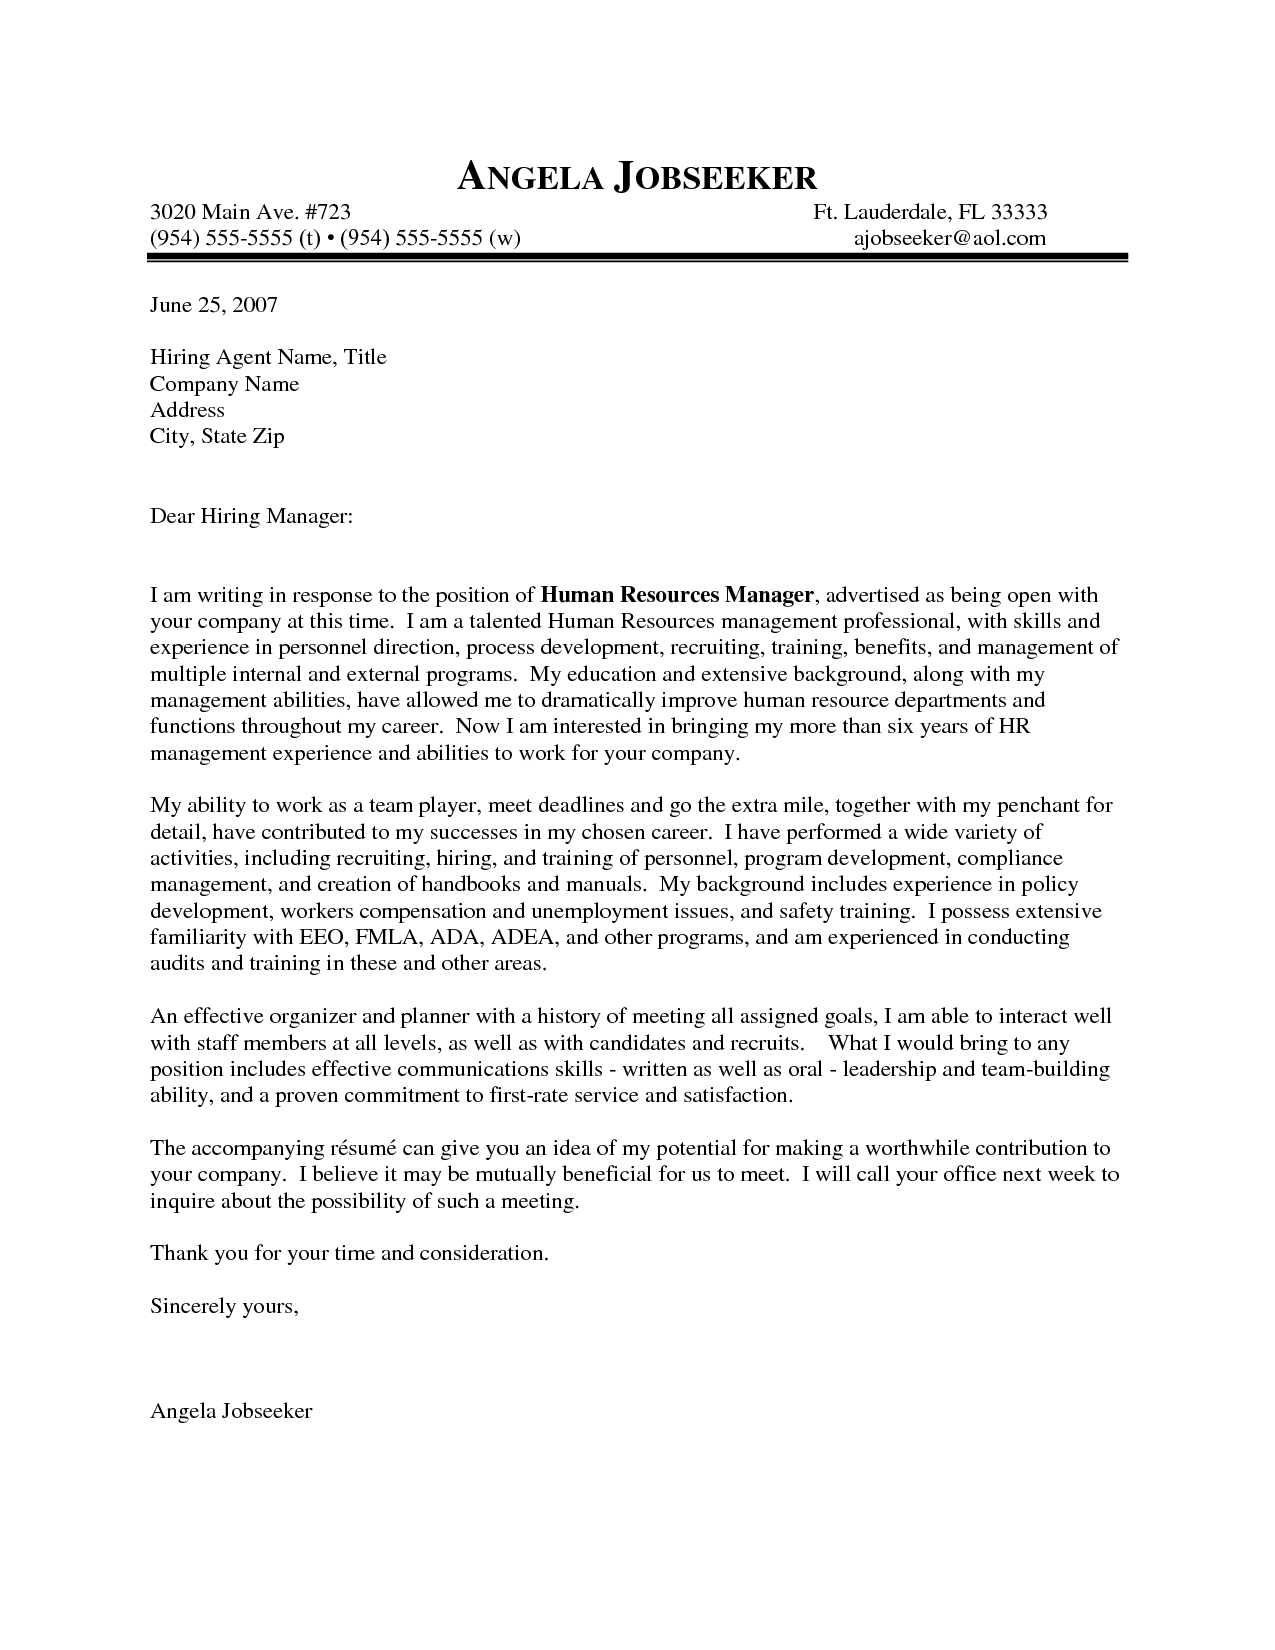 Cover Letter For Job Example Outstanding Cover Letter Examples  Hr Manager Cover Letter